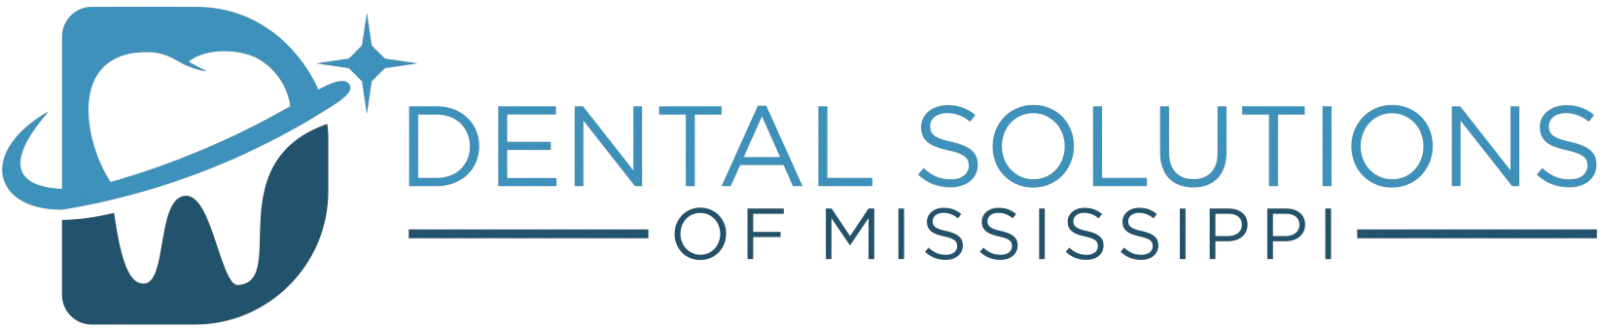 Dental solutions of mississippi logo